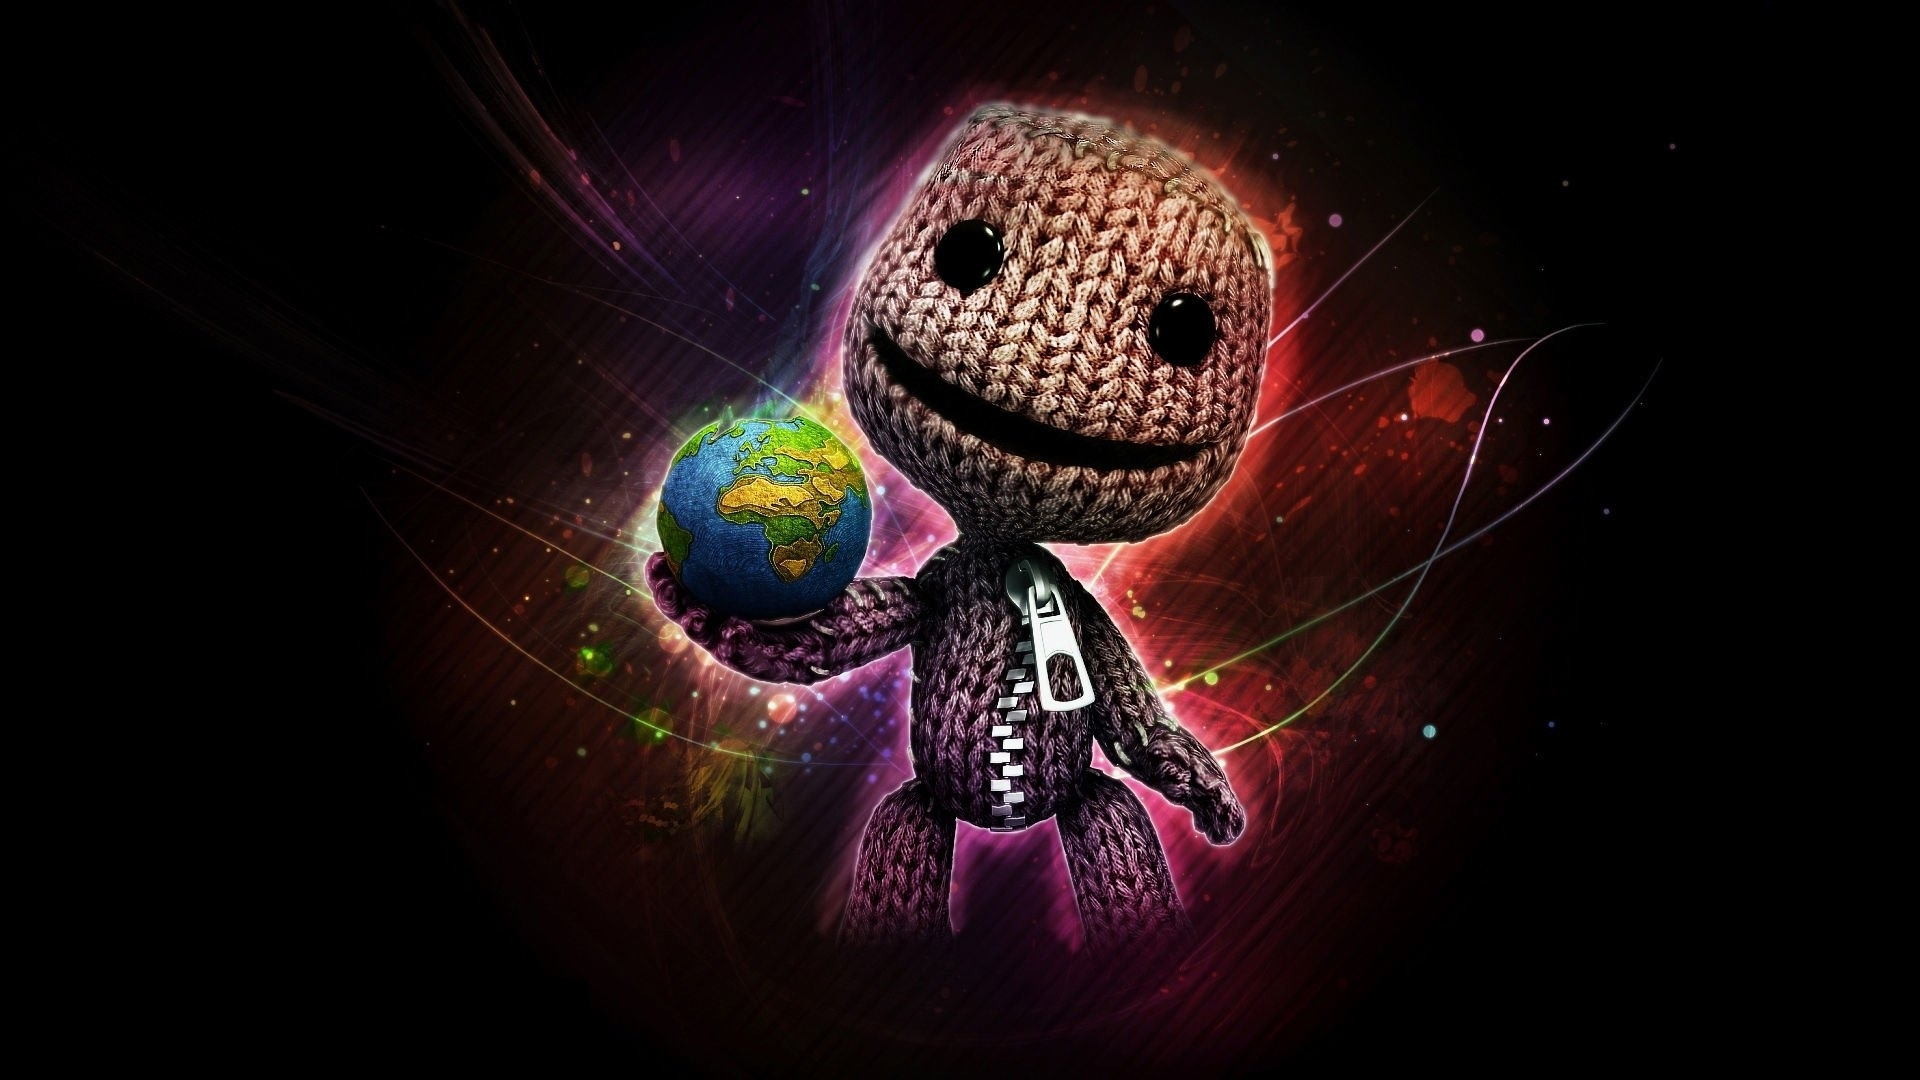 33 littlebigplanet hd wallpapers   background images - wallpaper abyss